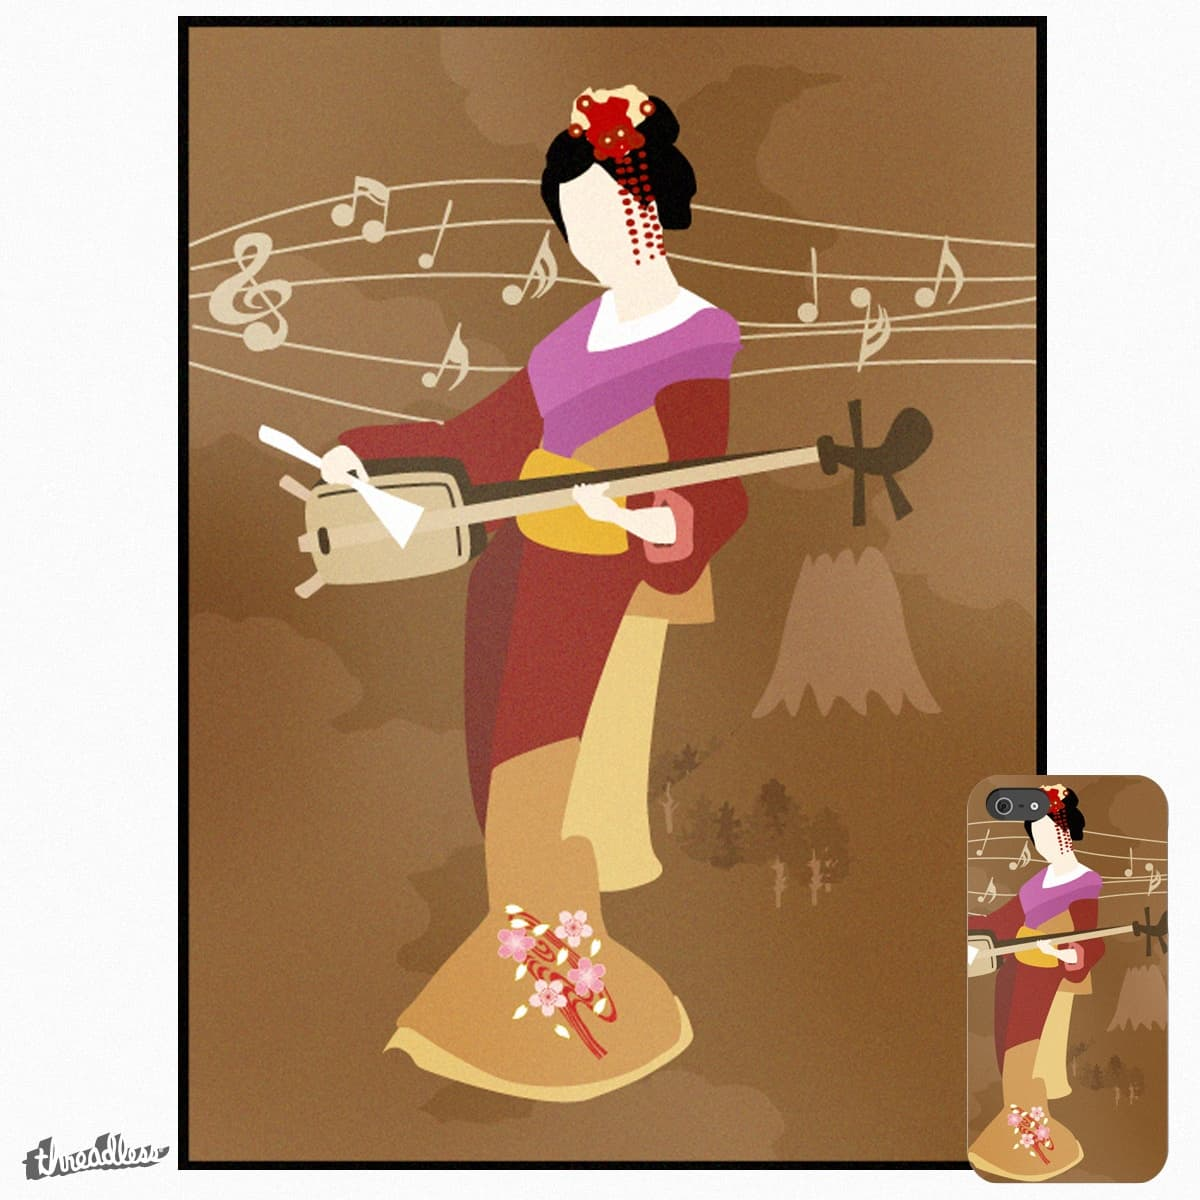 Shamisen by Strottmann on Threadless